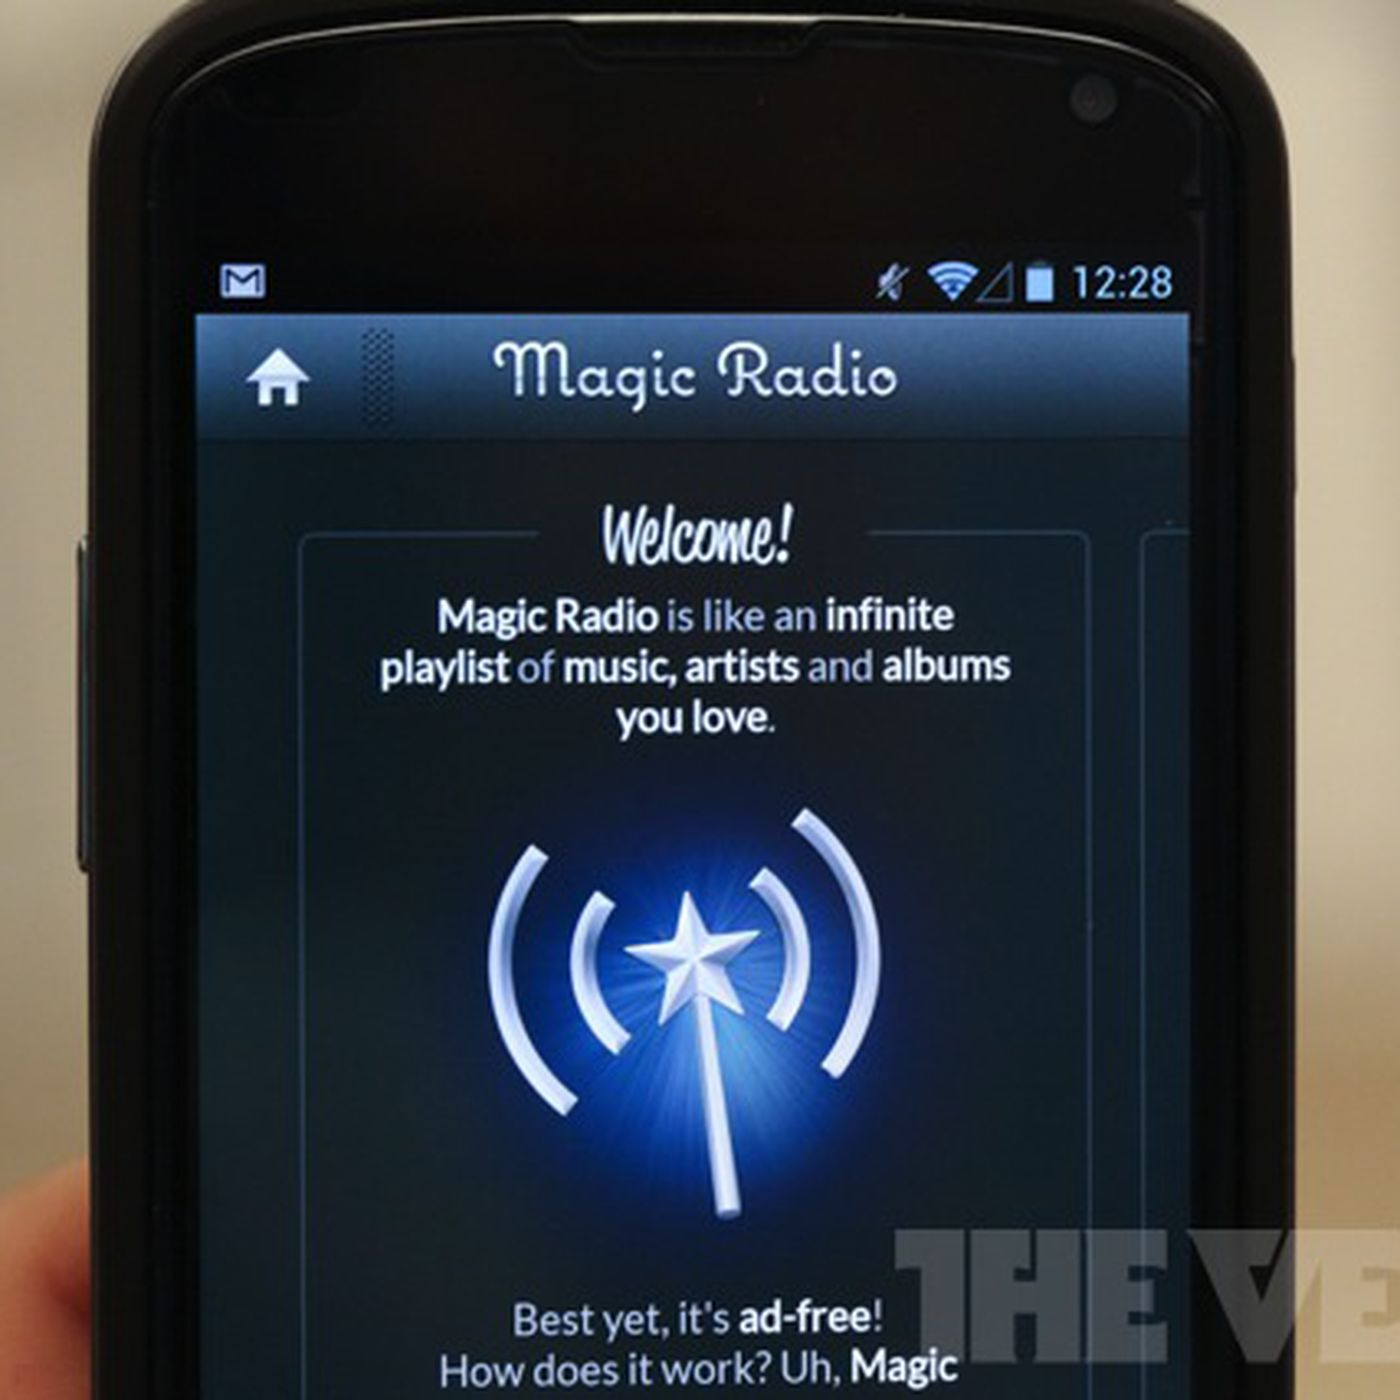 DoubleTwist for Android adds Magic Radio subscription